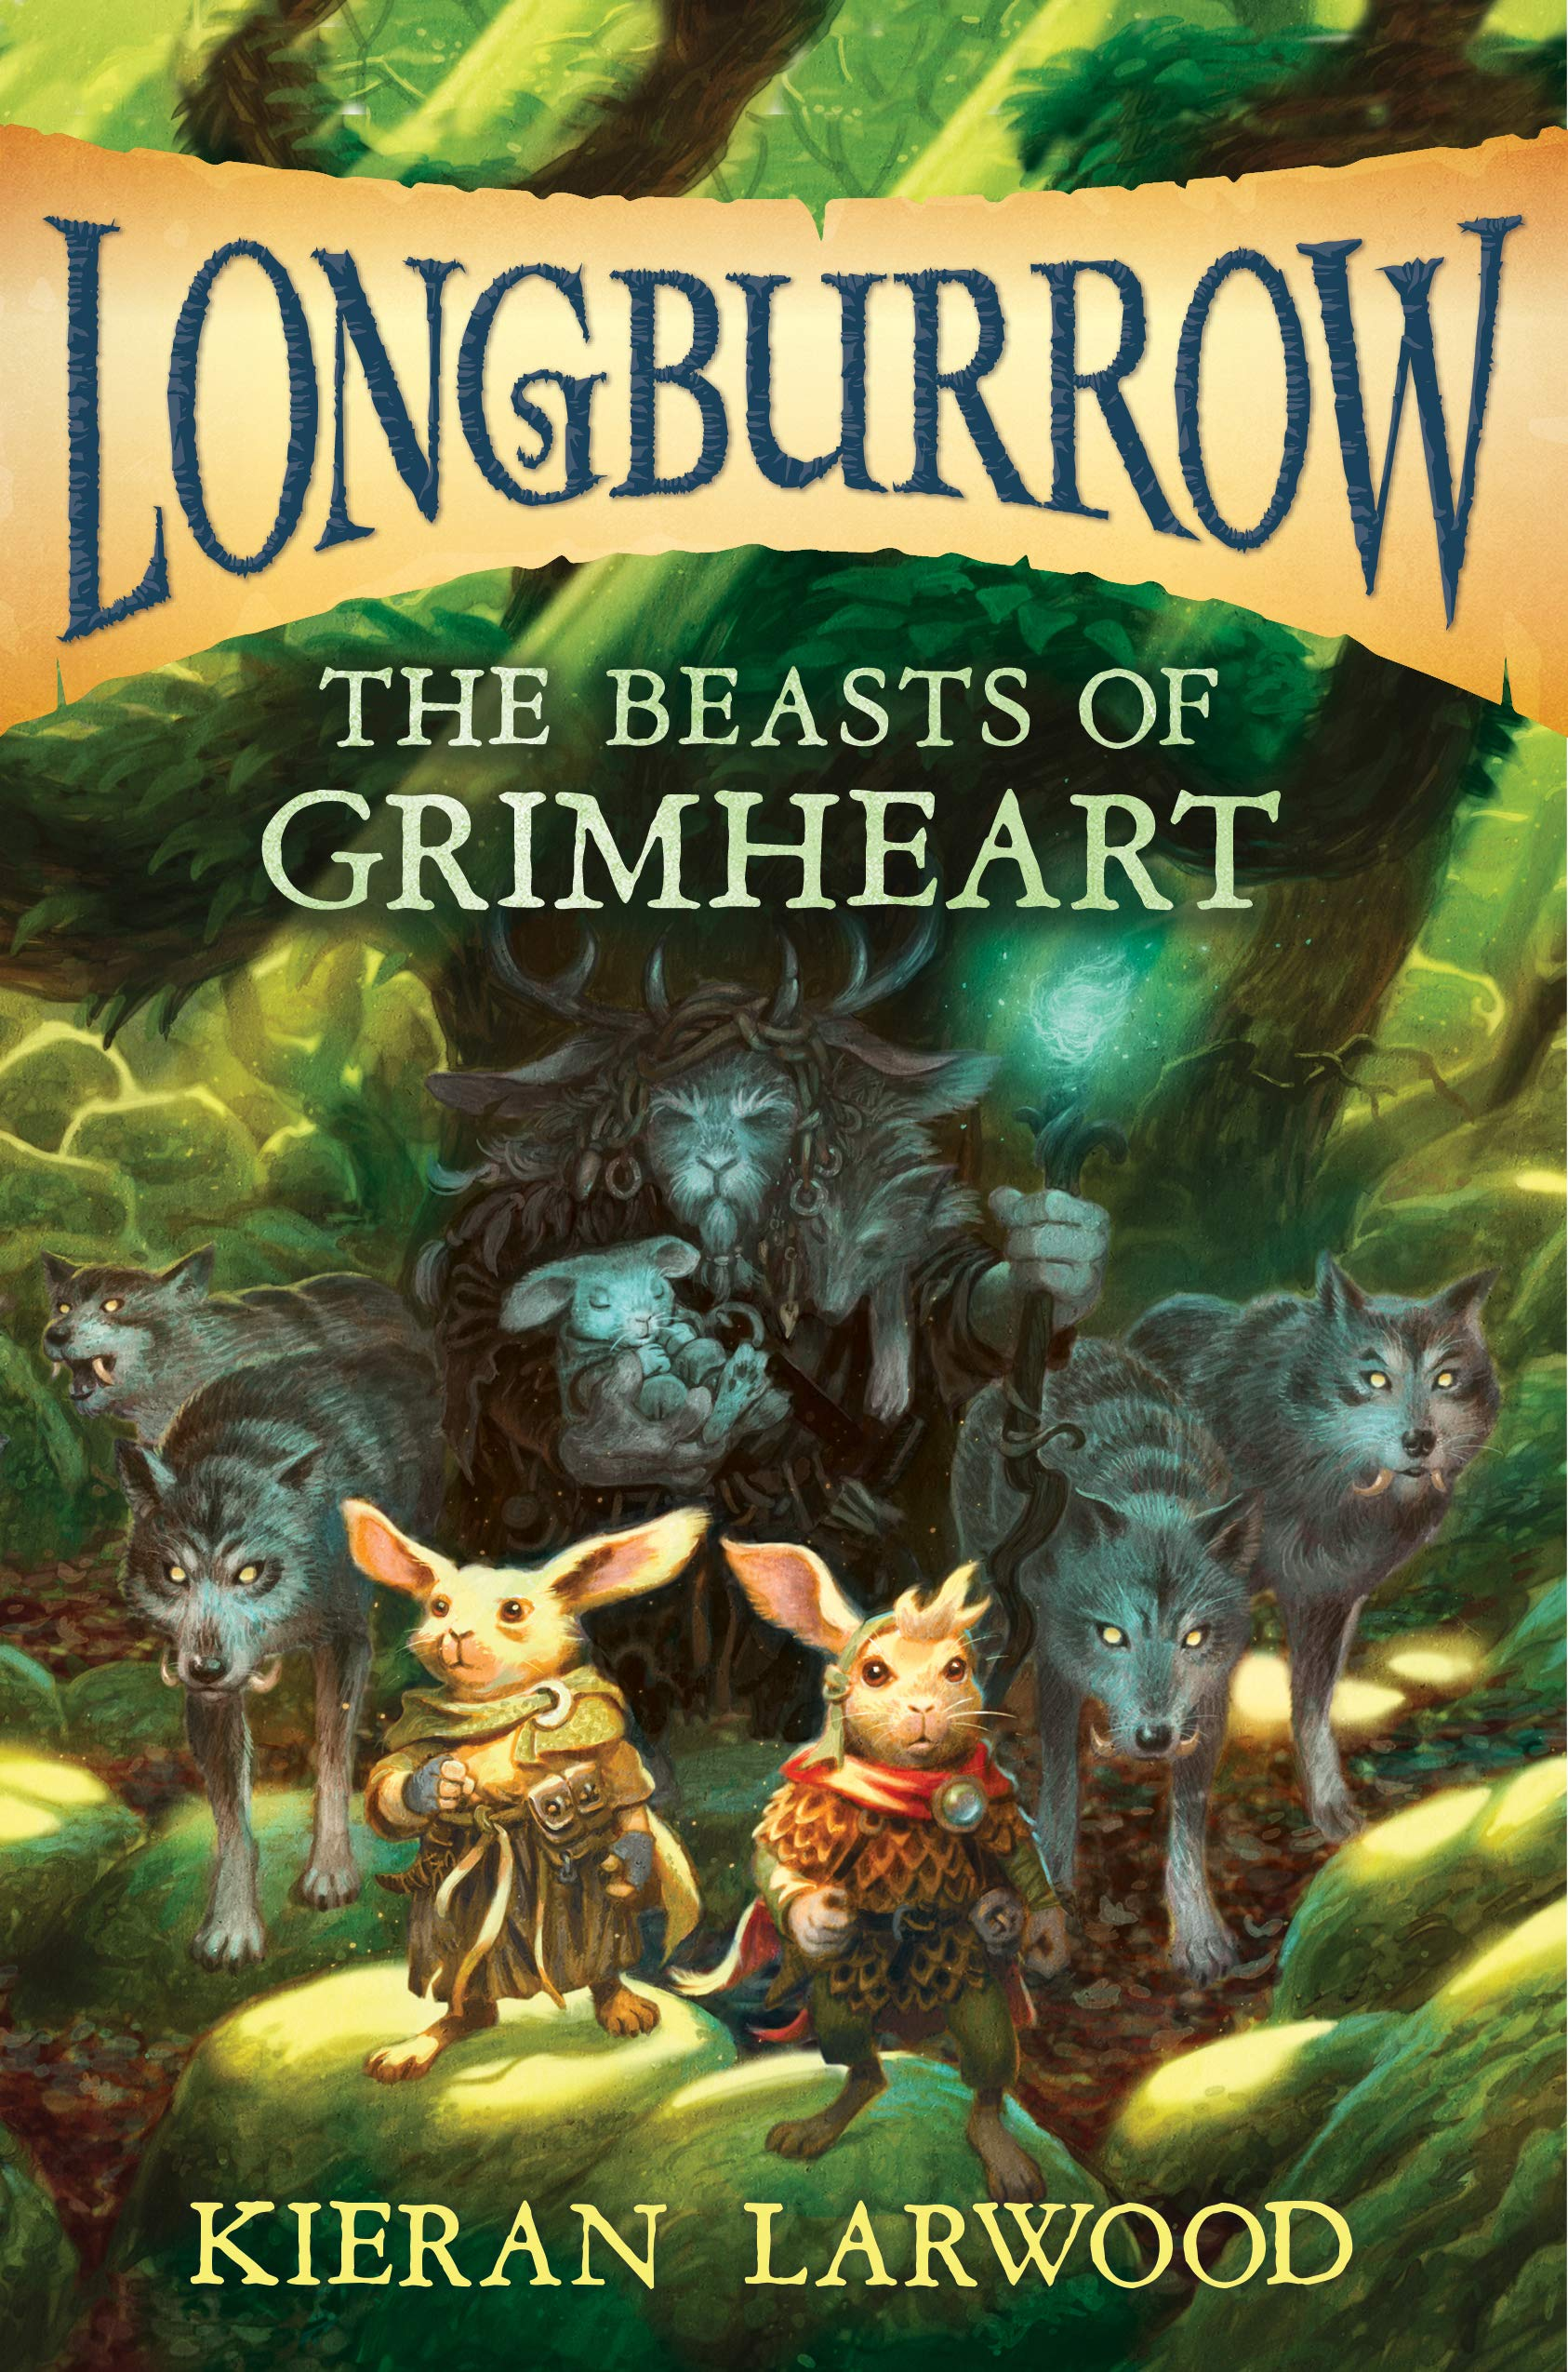 The Beasts of Grimheart (Longburrow)